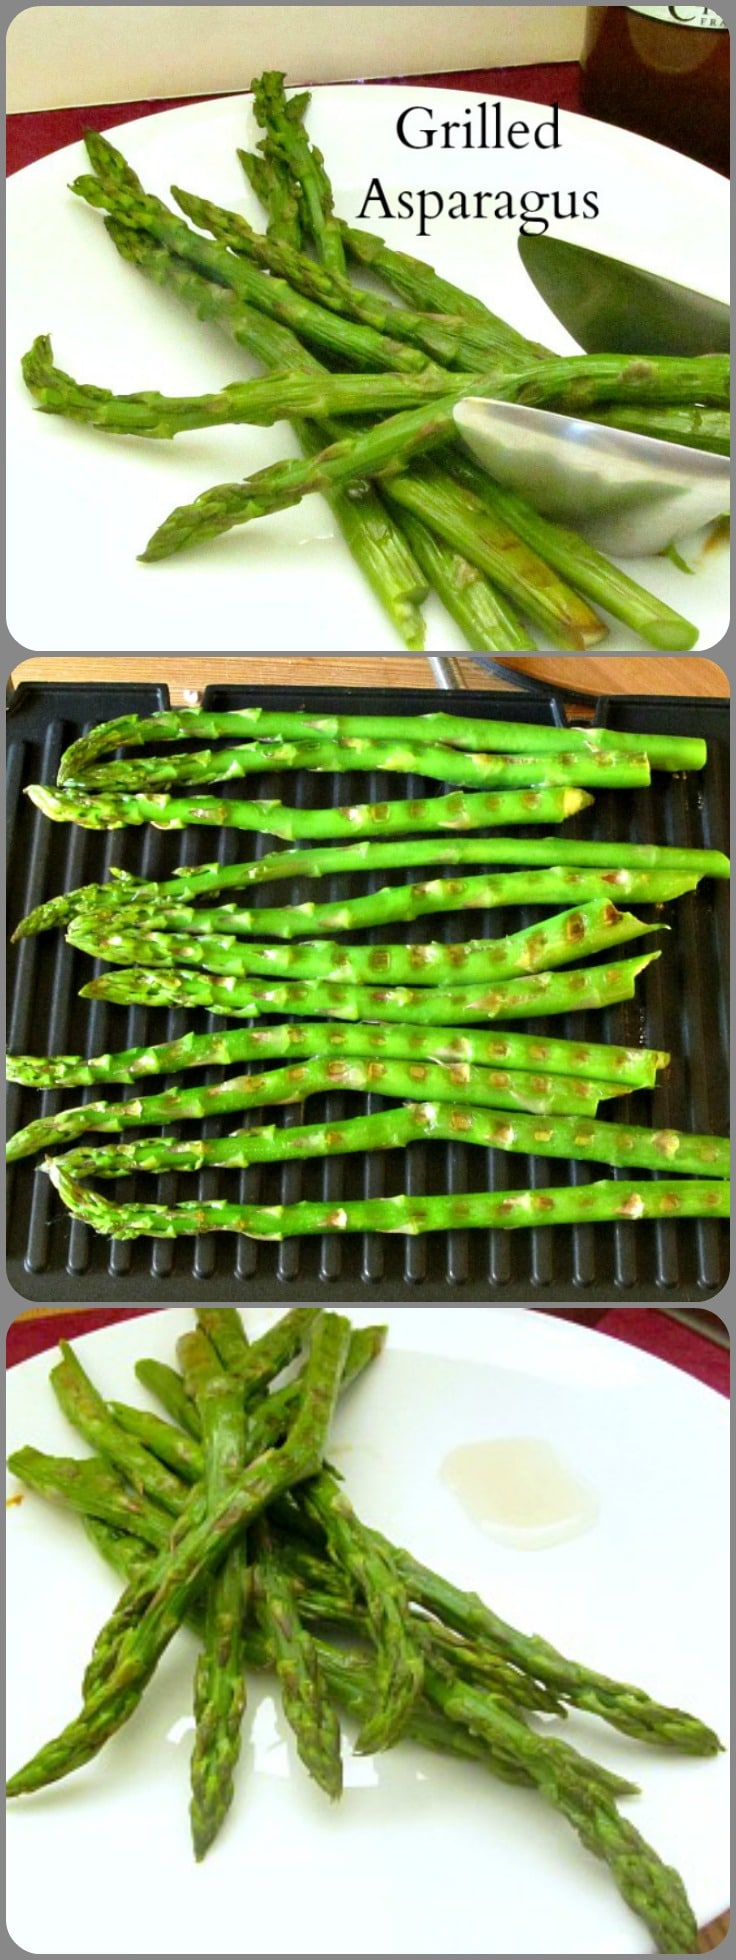 Grilled asparagus, with or without sauce or other seasoning - a simple and delicious method for cooking this lovely Springtime vegetable!